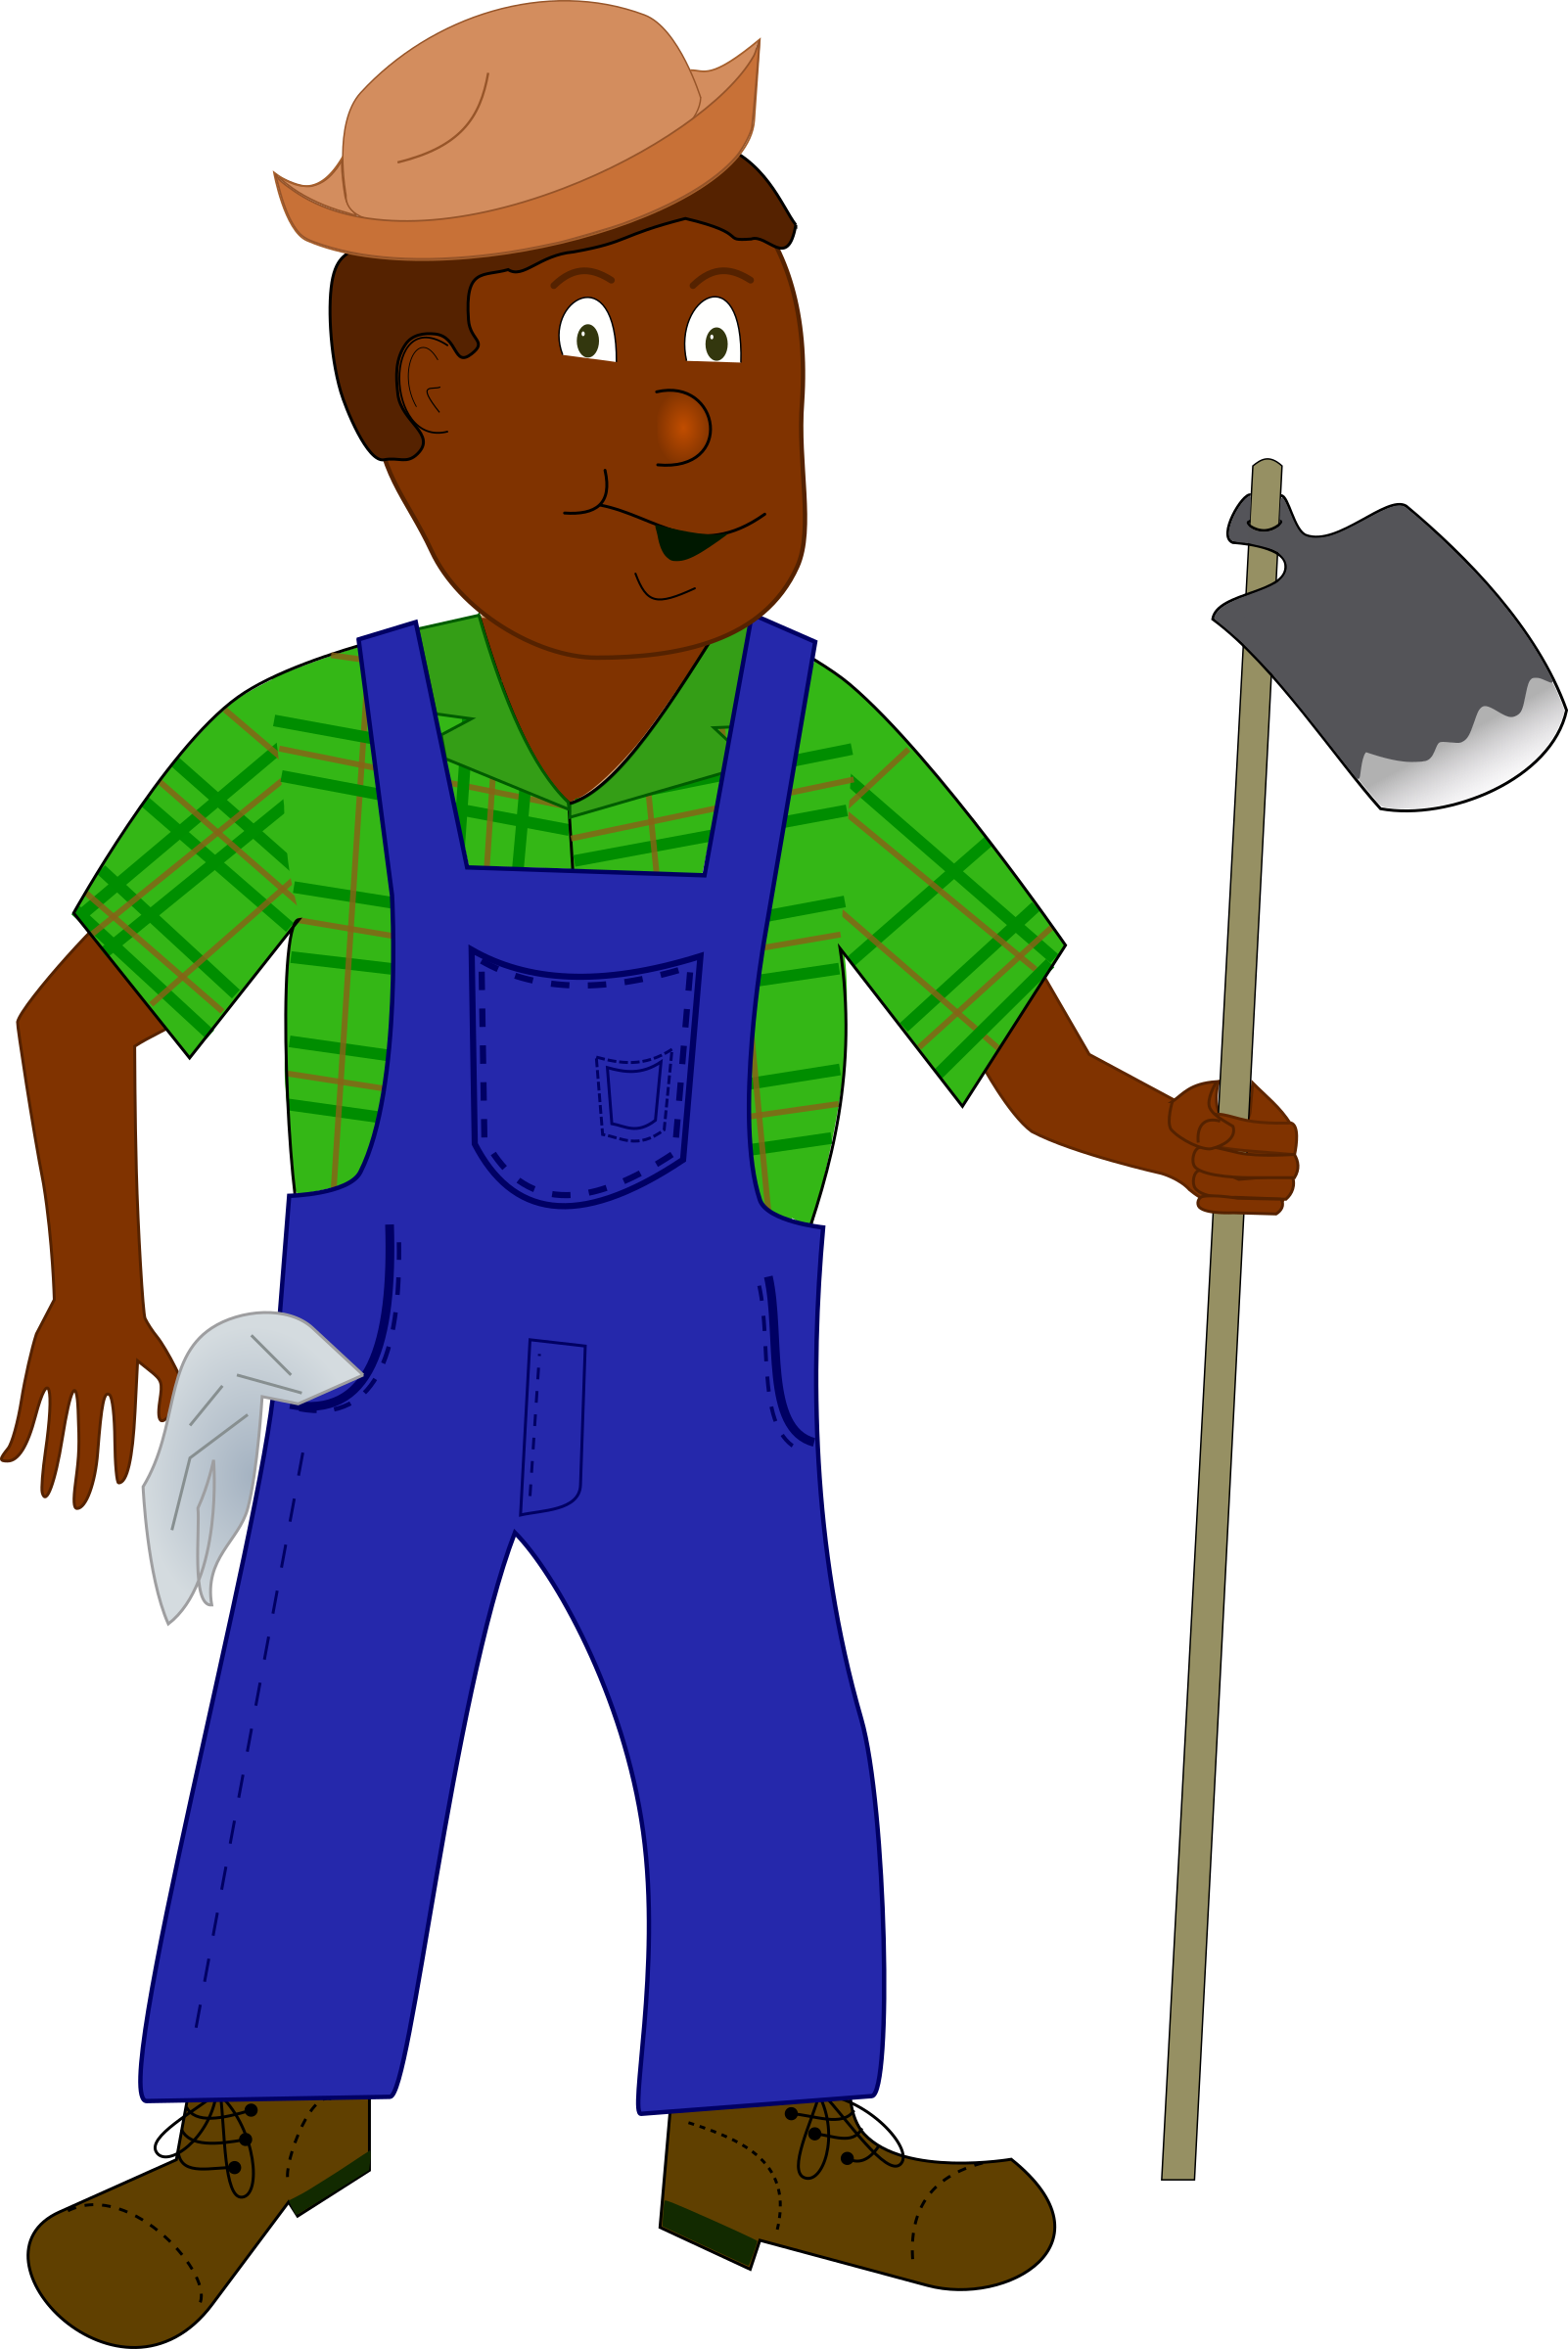 Farming clipart farm worker. African farmer big image